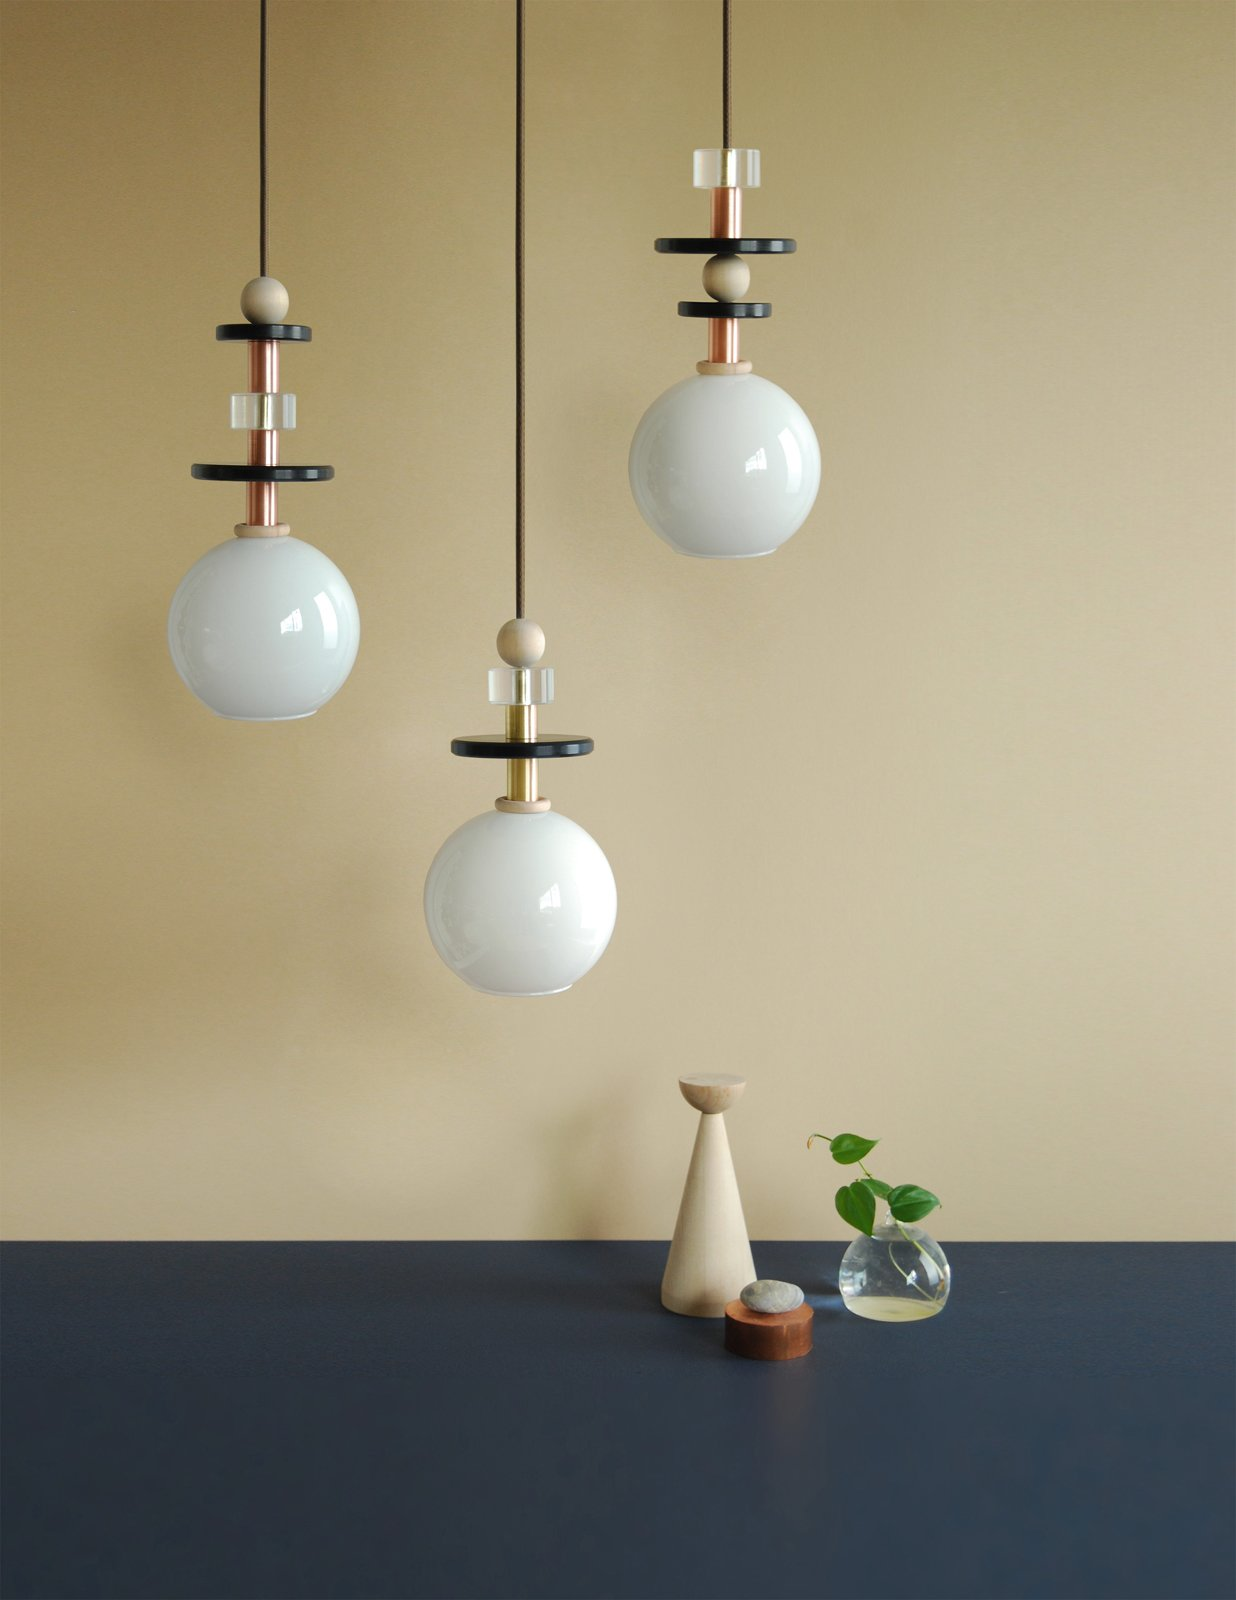 Also at Noho Next, Ladies and Gentleman's Maru lighting, pendant lights created from beaded parts.  60+ Modern Lighting Solutions by Dwell from Top Picks from Noho Design District 2013